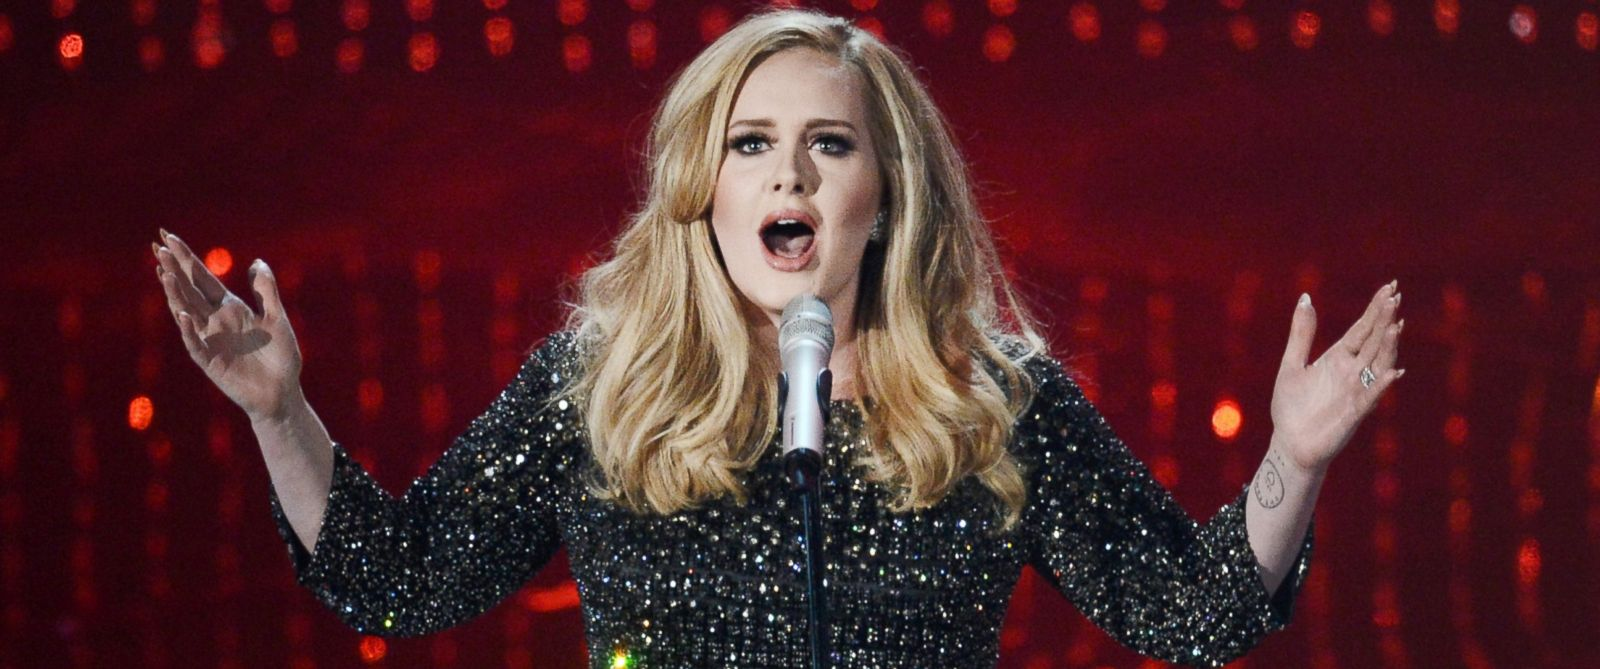 PHOTO: Singer Adele performs onstage during the Oscars held at the Dolby Theatre on February 24, 2013 in Hollywood, Calif.